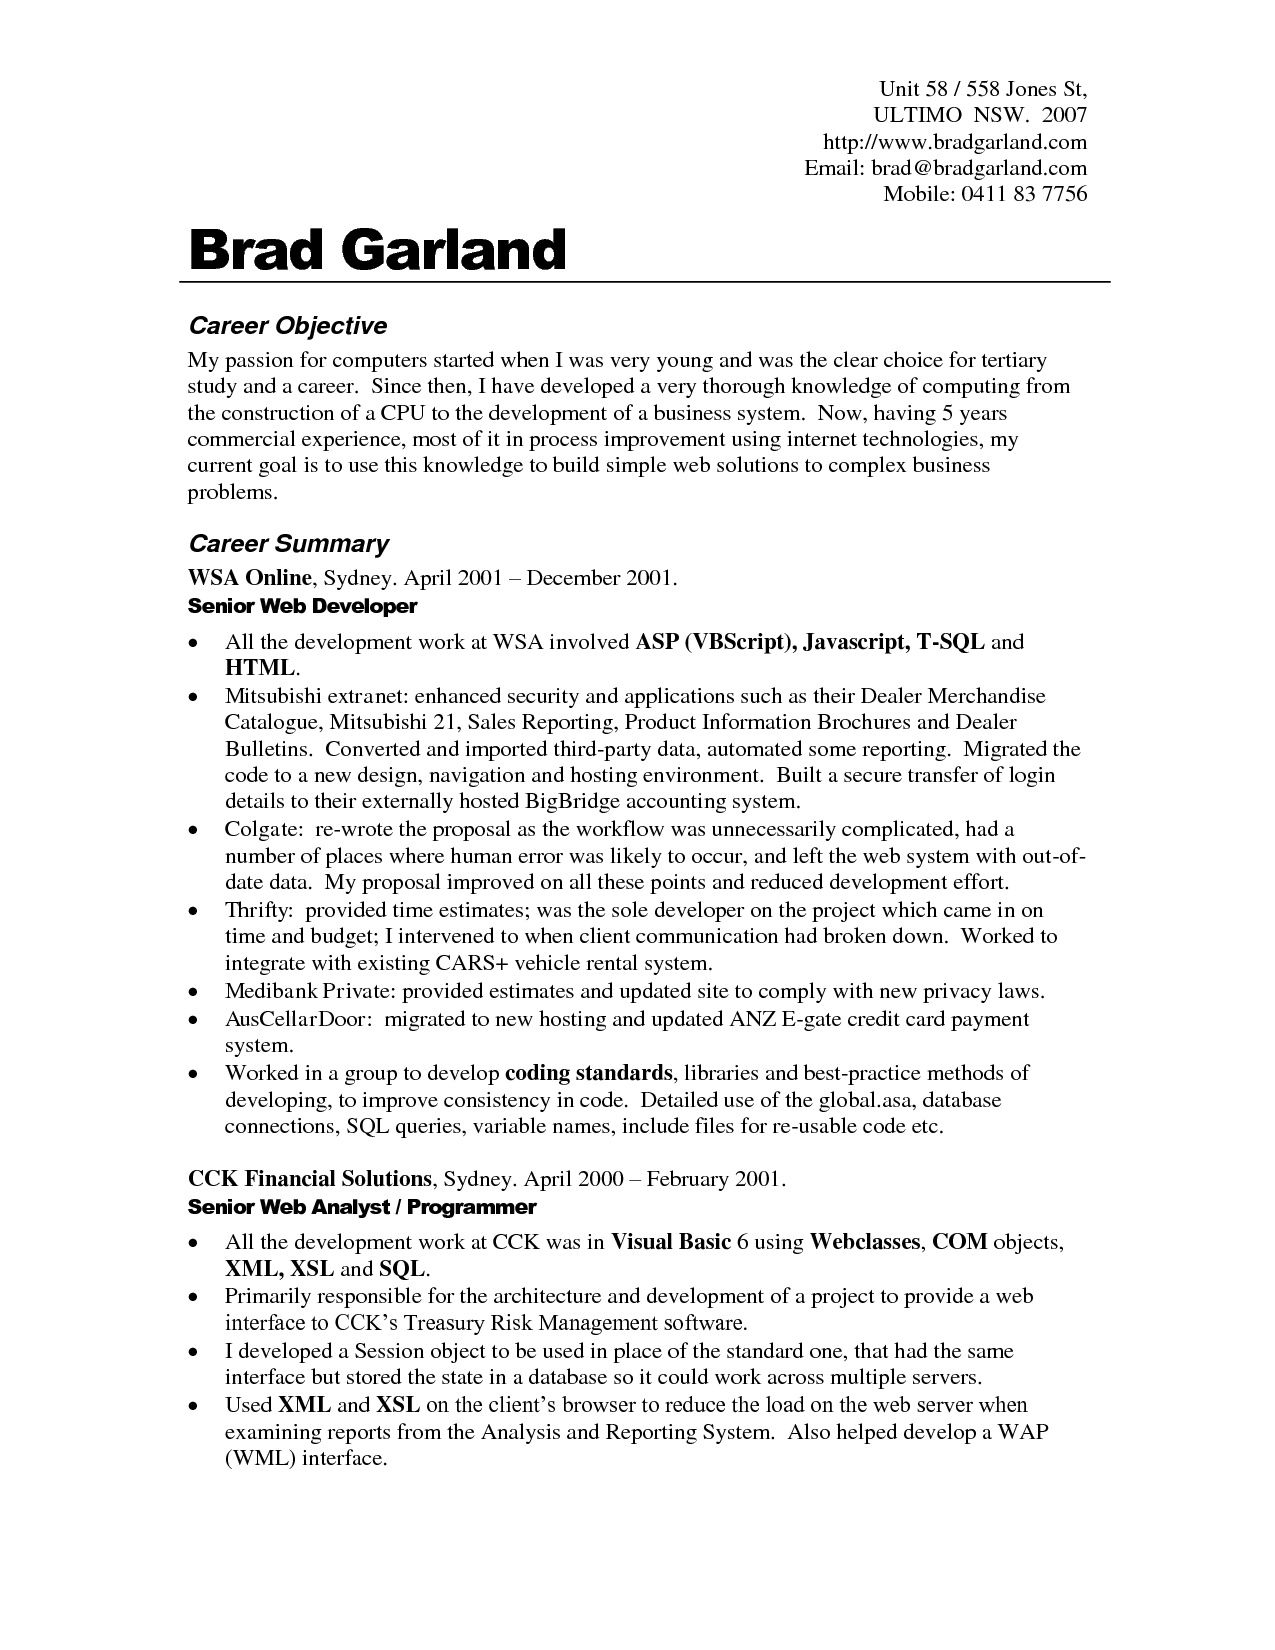 career objective resume examples for example your training goals ...